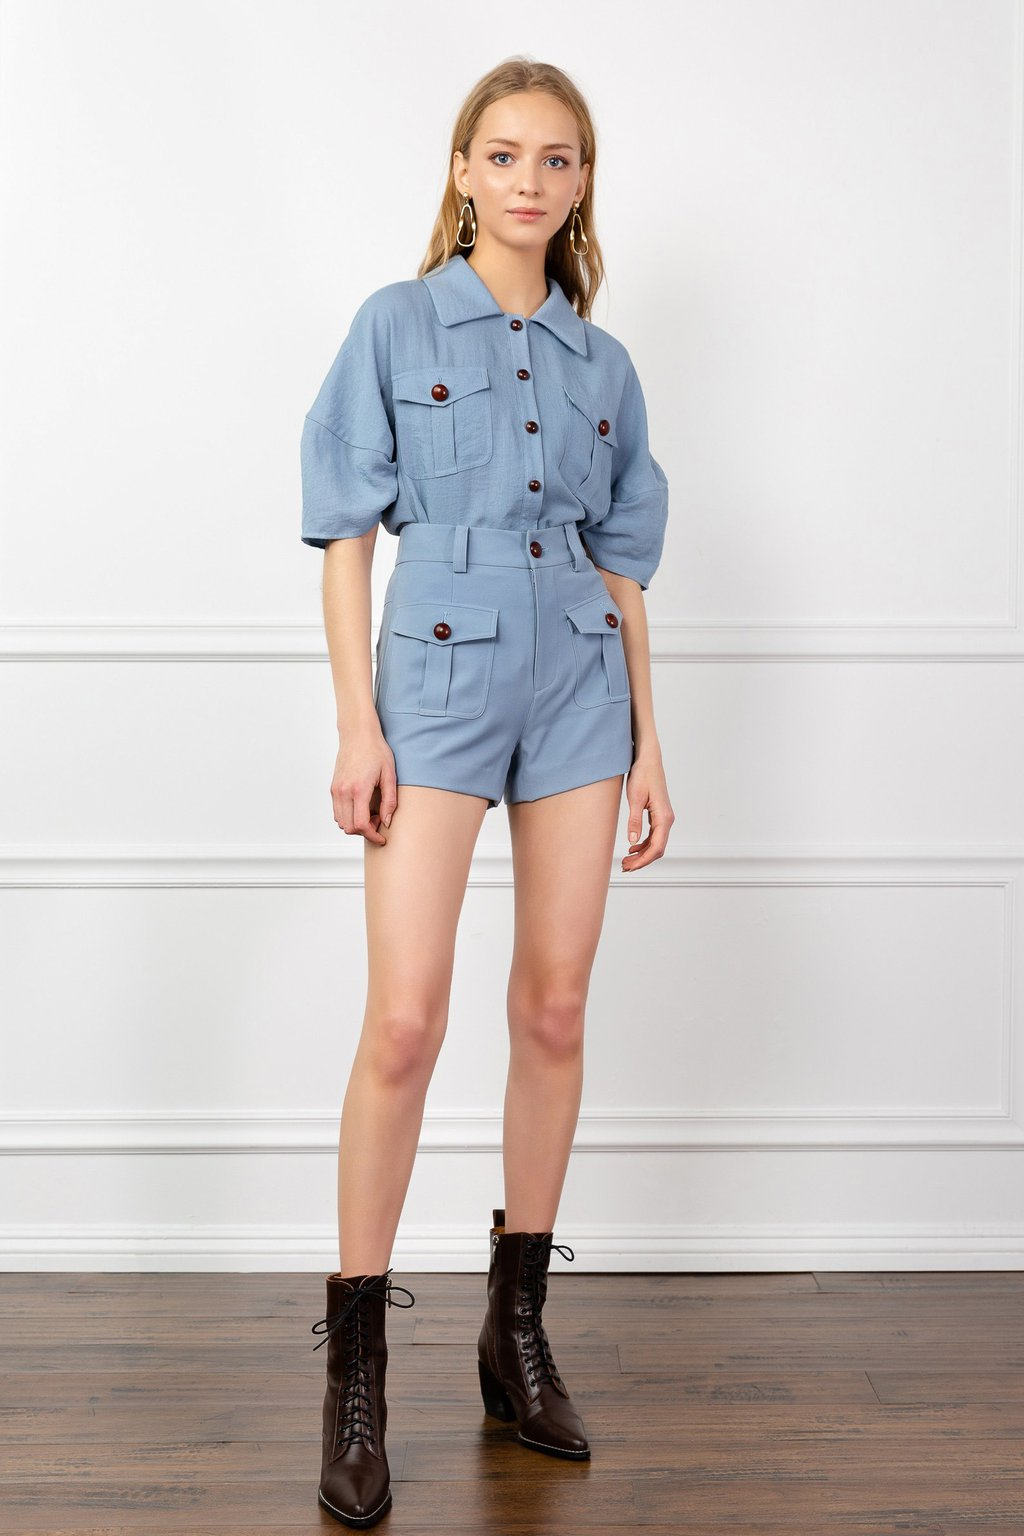 Blue Barry Shirt by J.ING women's fashion clothing